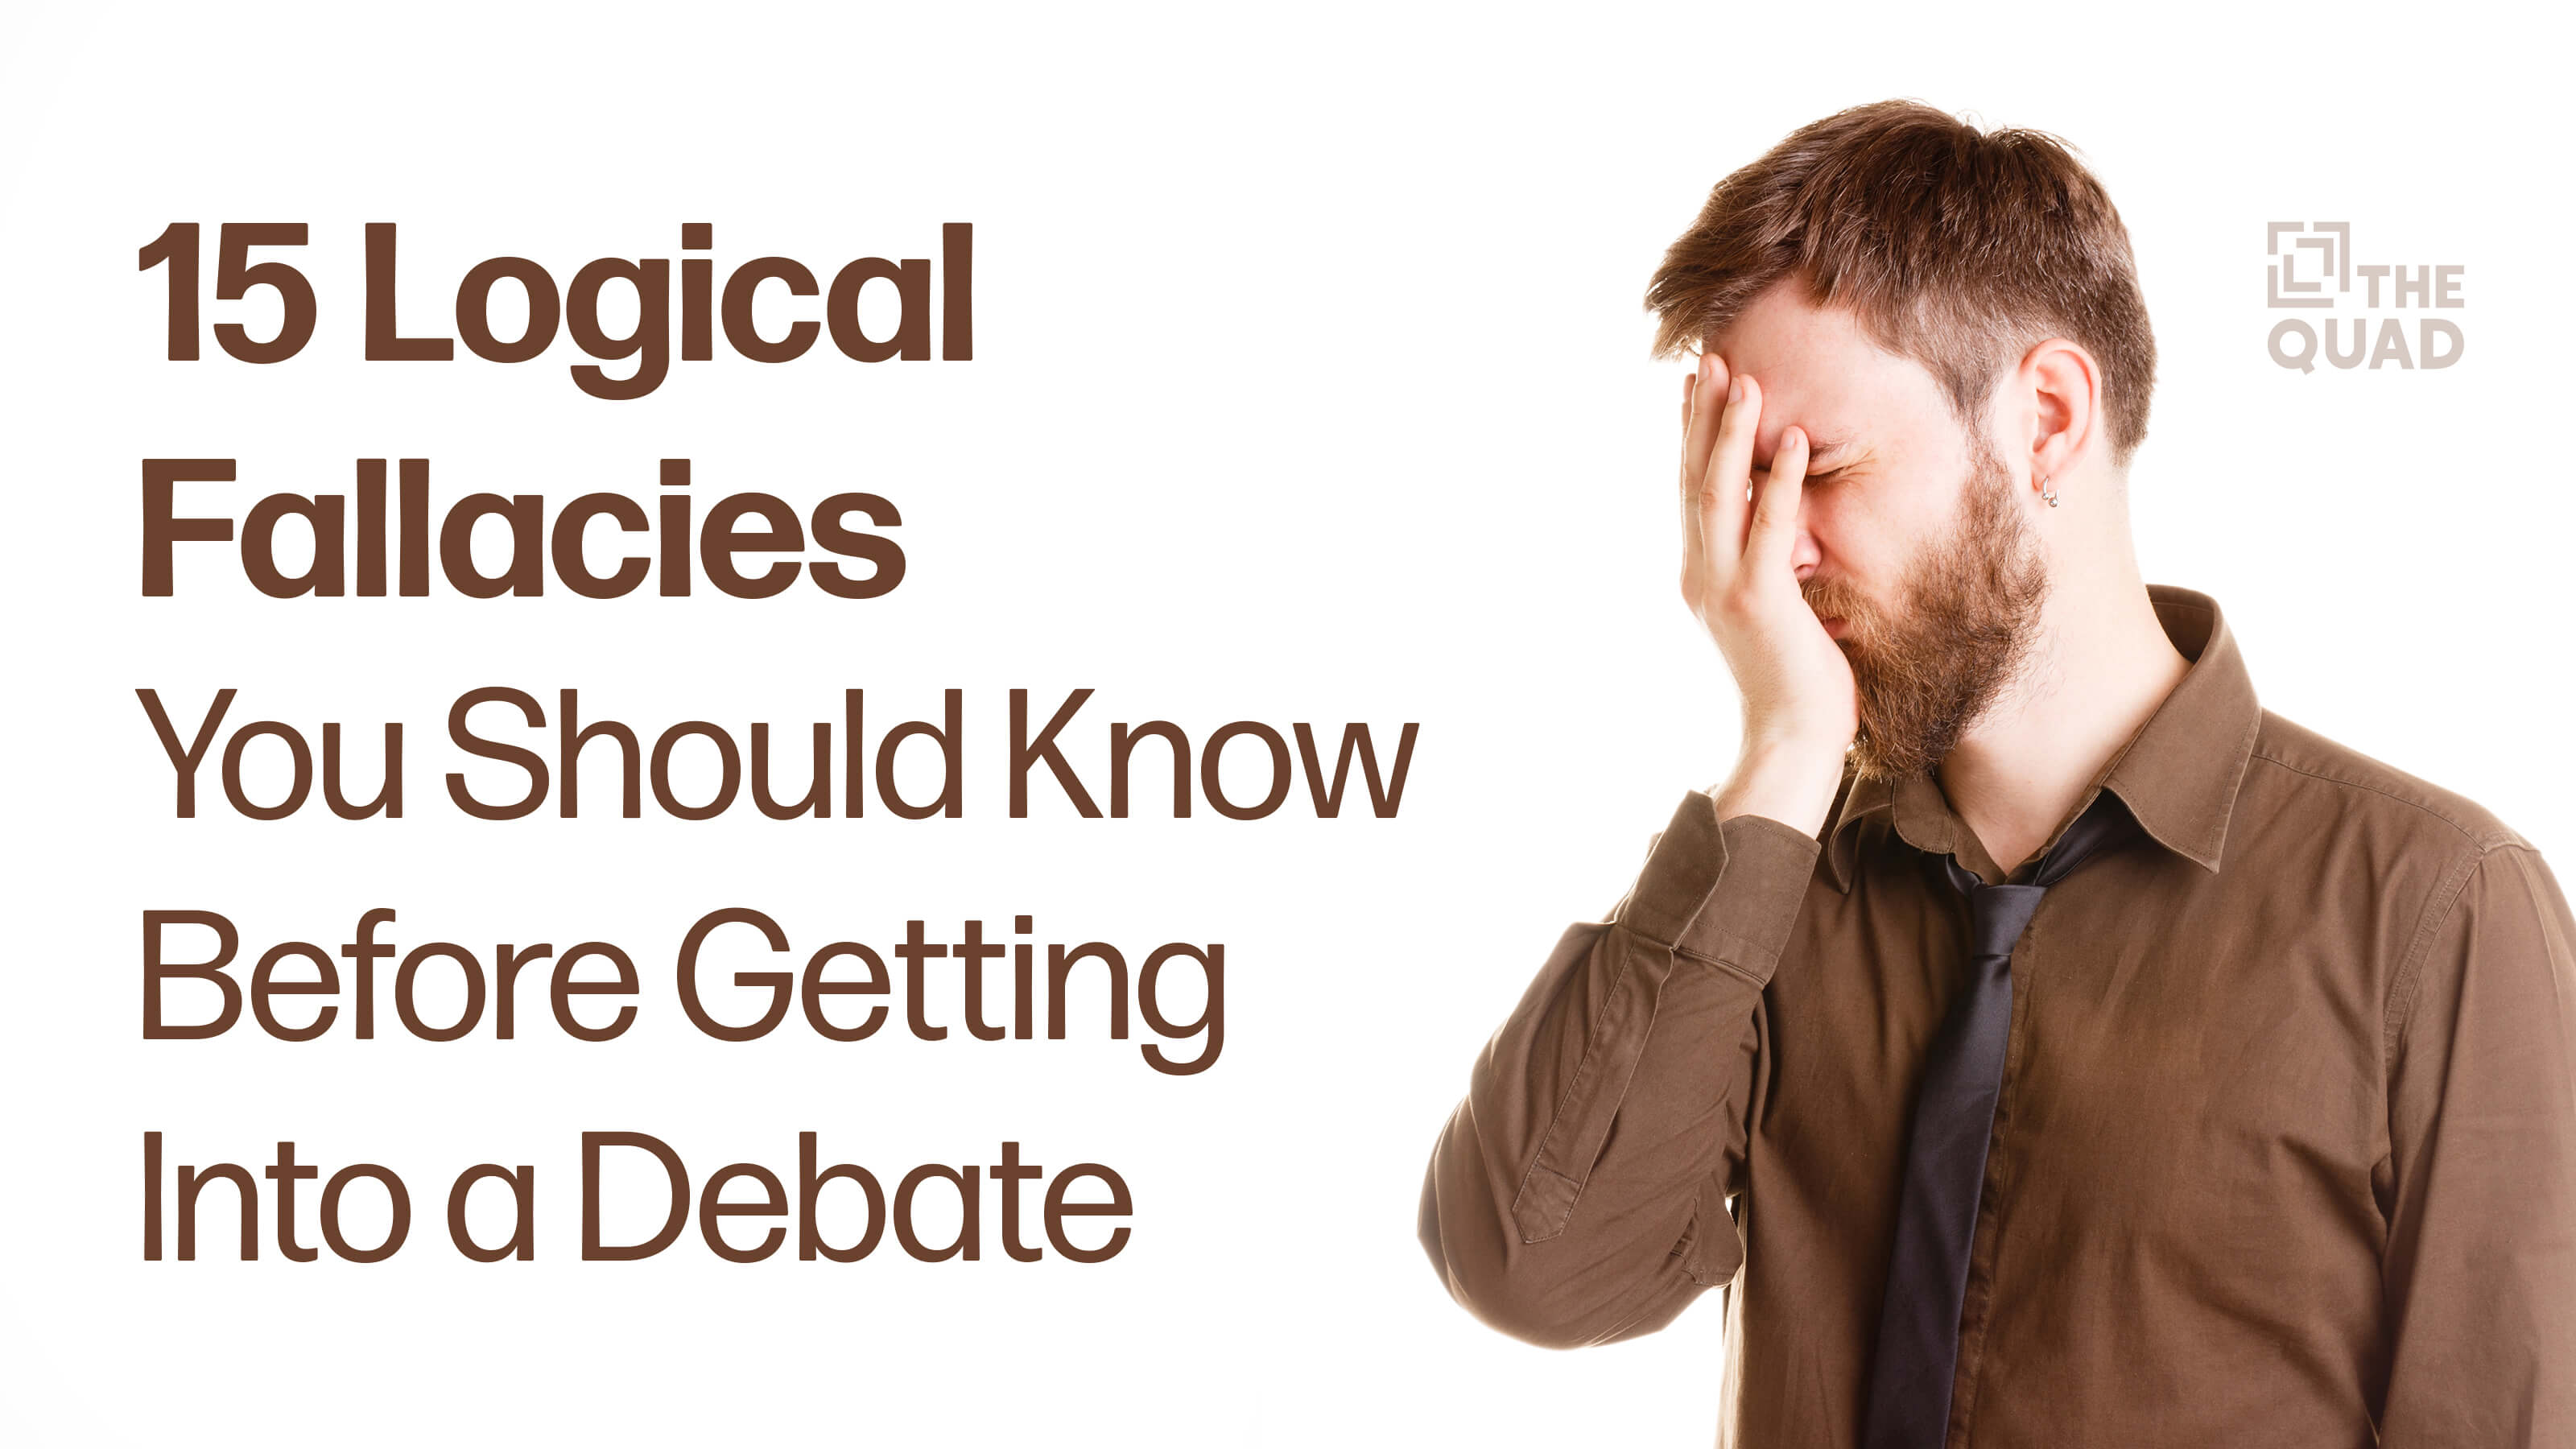 15 Logical Fallacies You Should Know Before Getting Into a